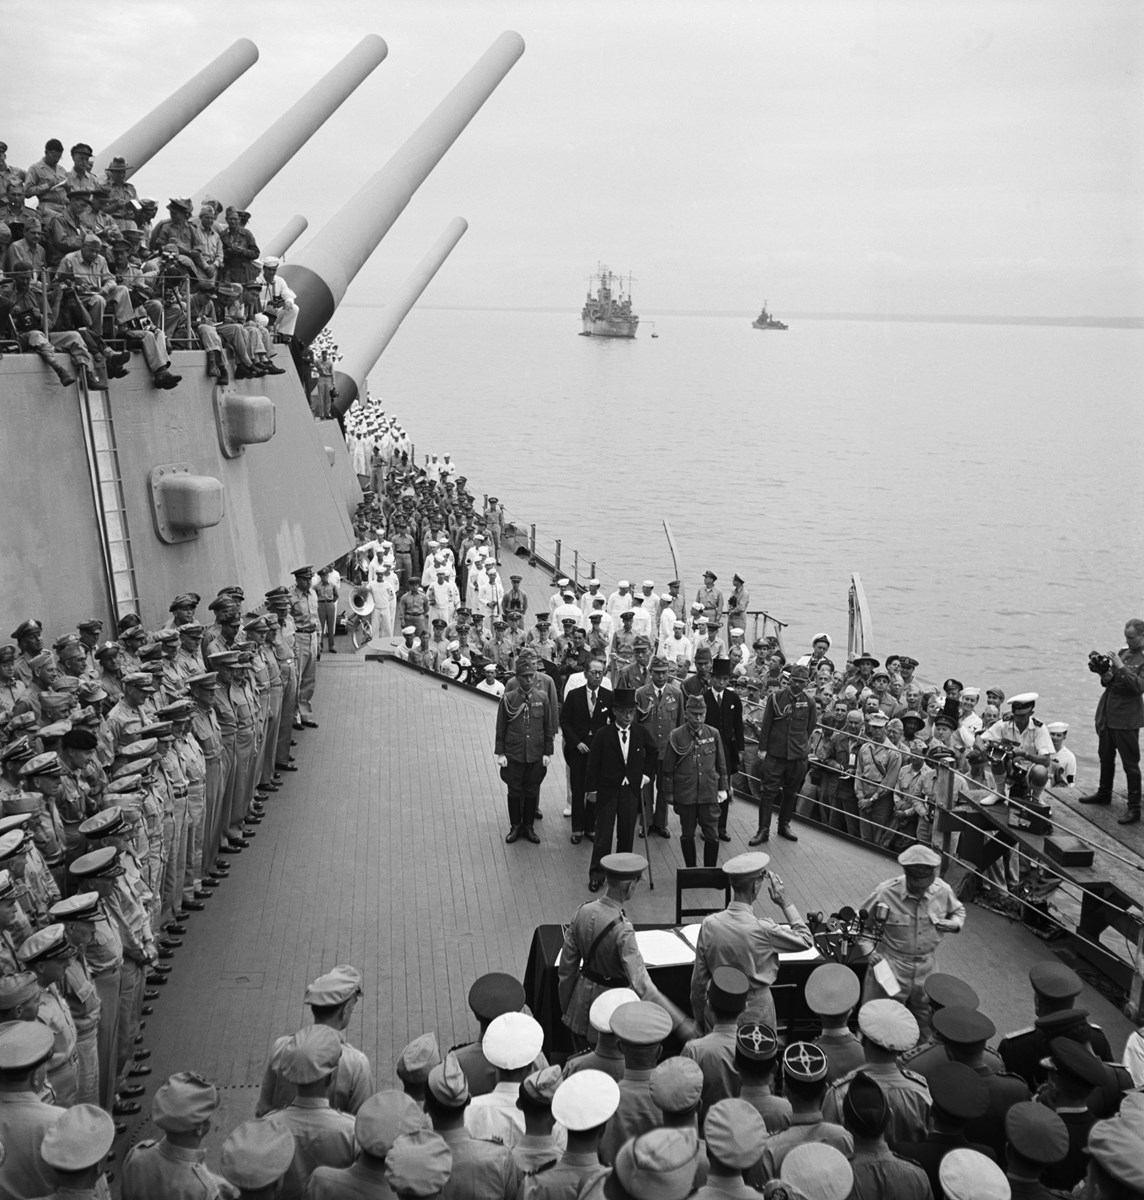 historic image of the Japanese surrender on the USS Missouri, 1945